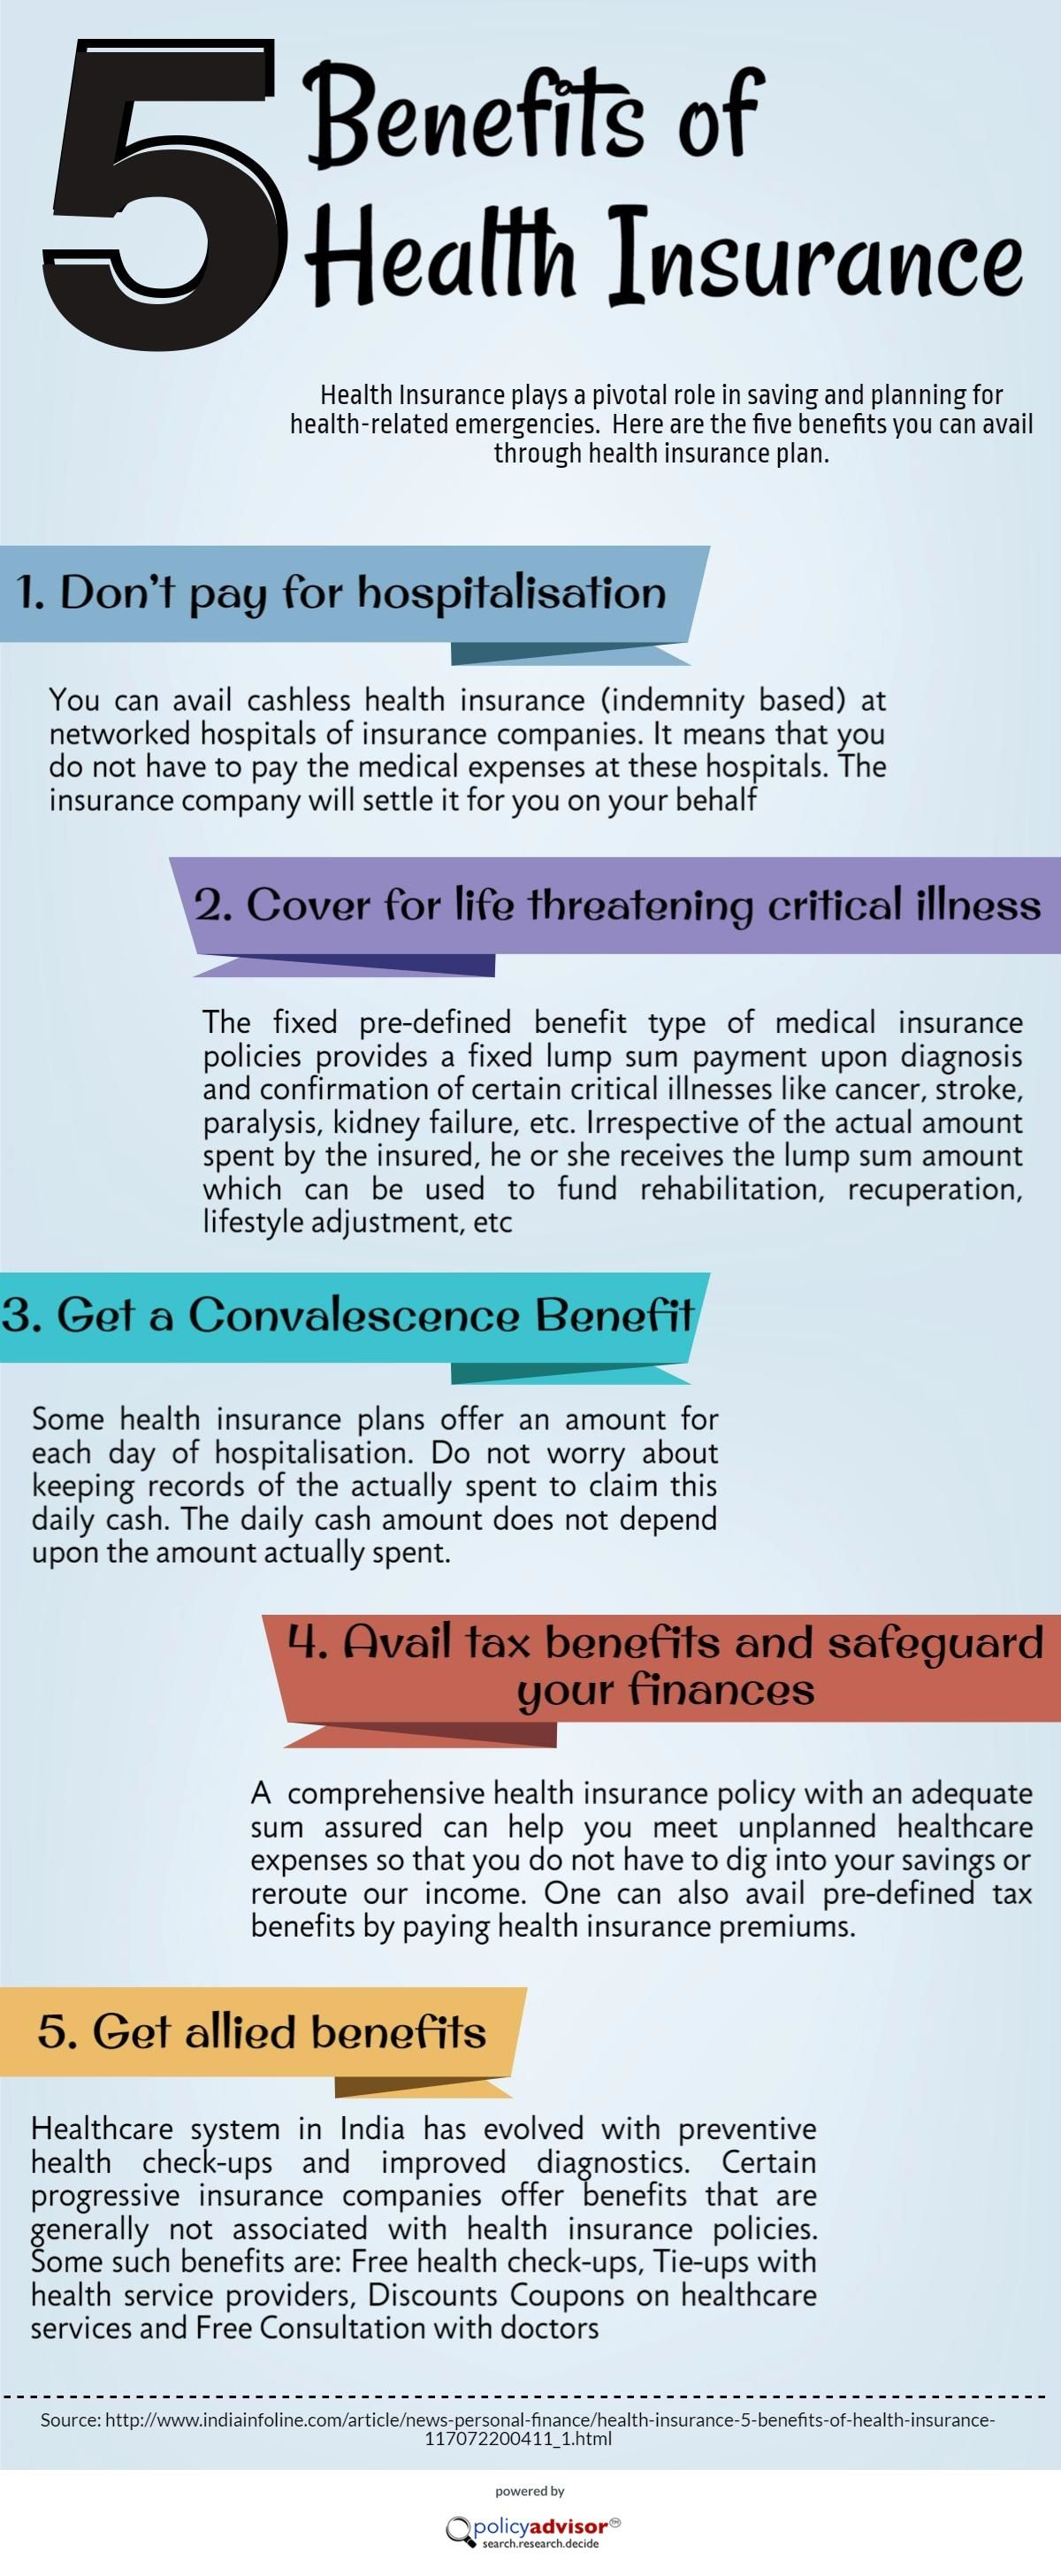 Health Insurance Plays A Pivotal Role In Saving And Planning For